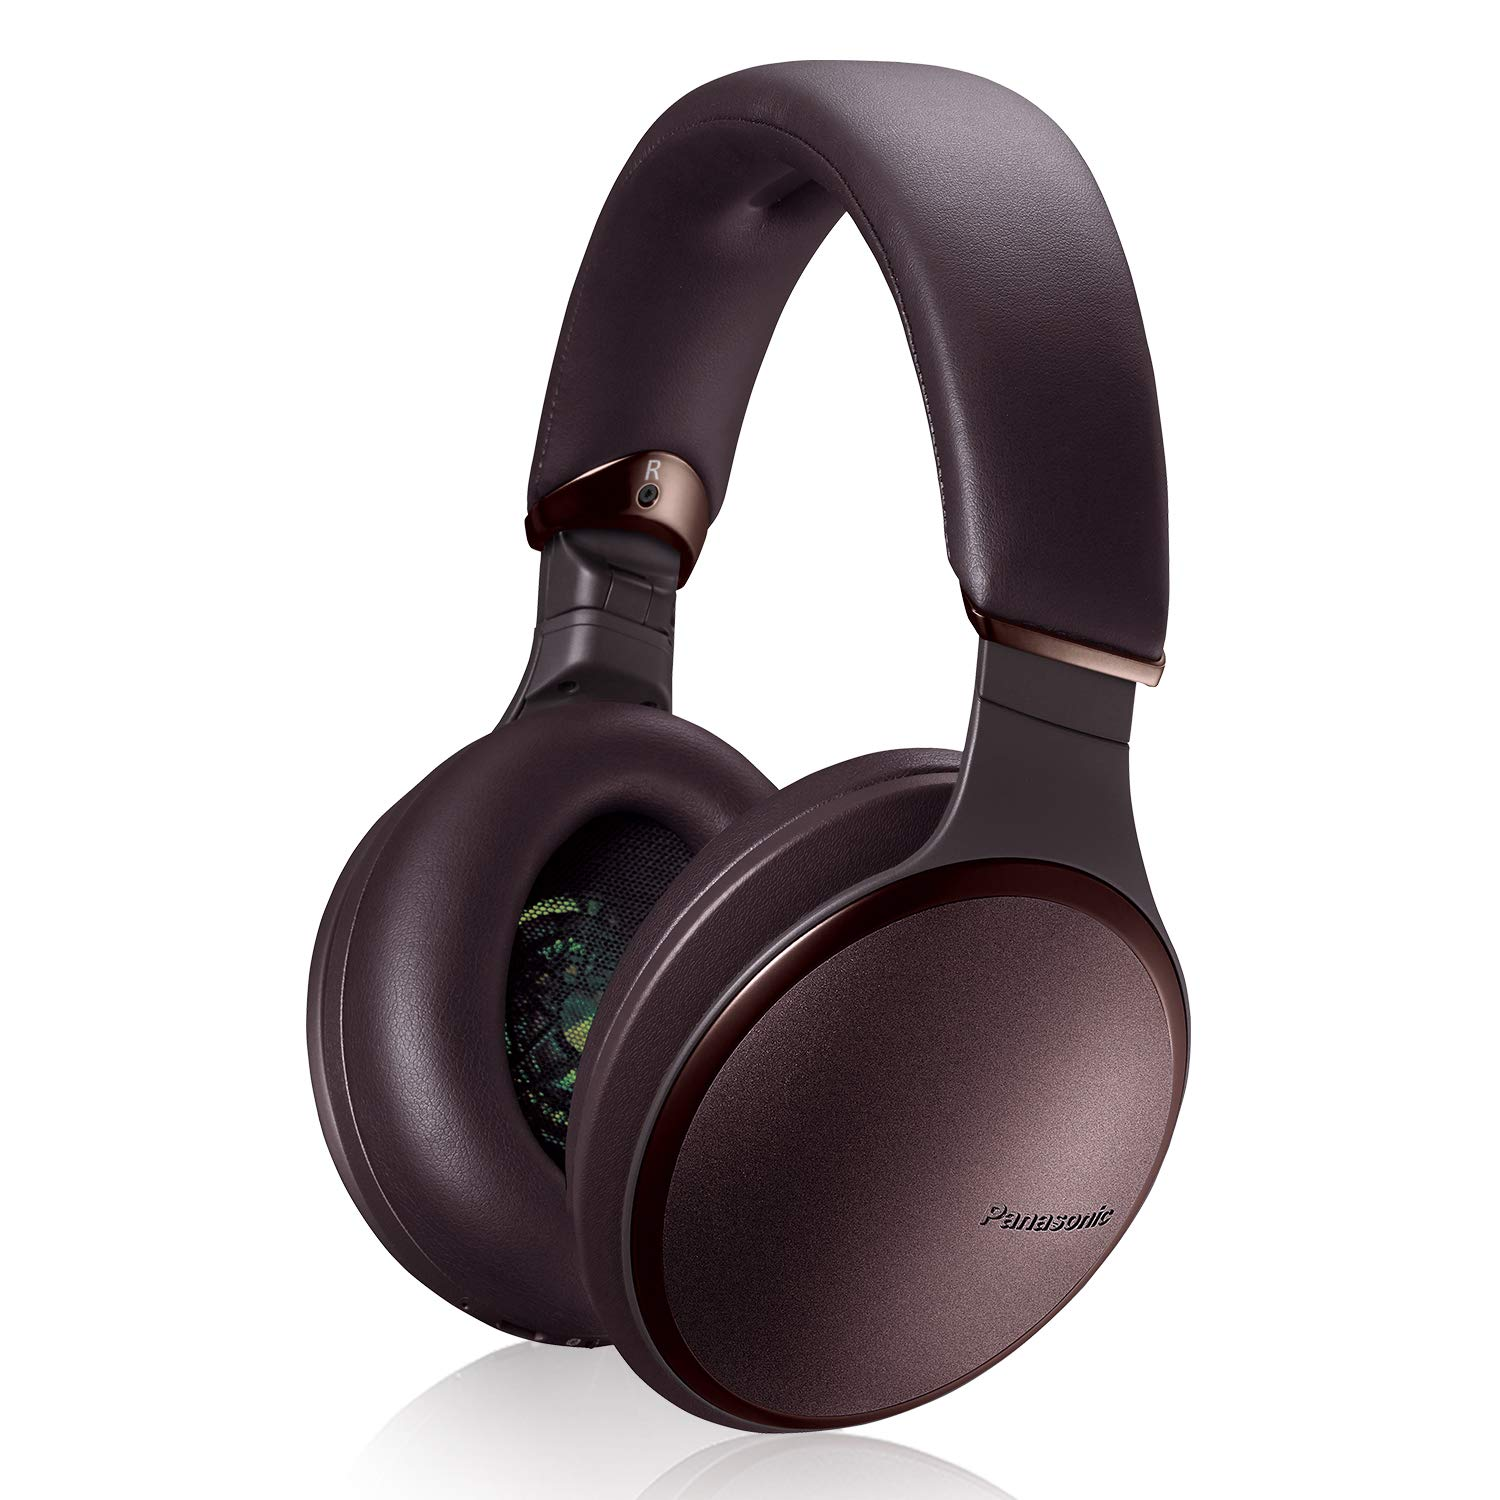 Panasonic Noise Cancelling Headphones with Wireless Bluetooth, Alexa Voice Control & Other Assistants - RP-HD605N-T - Over The Ear Headphone (Brown)